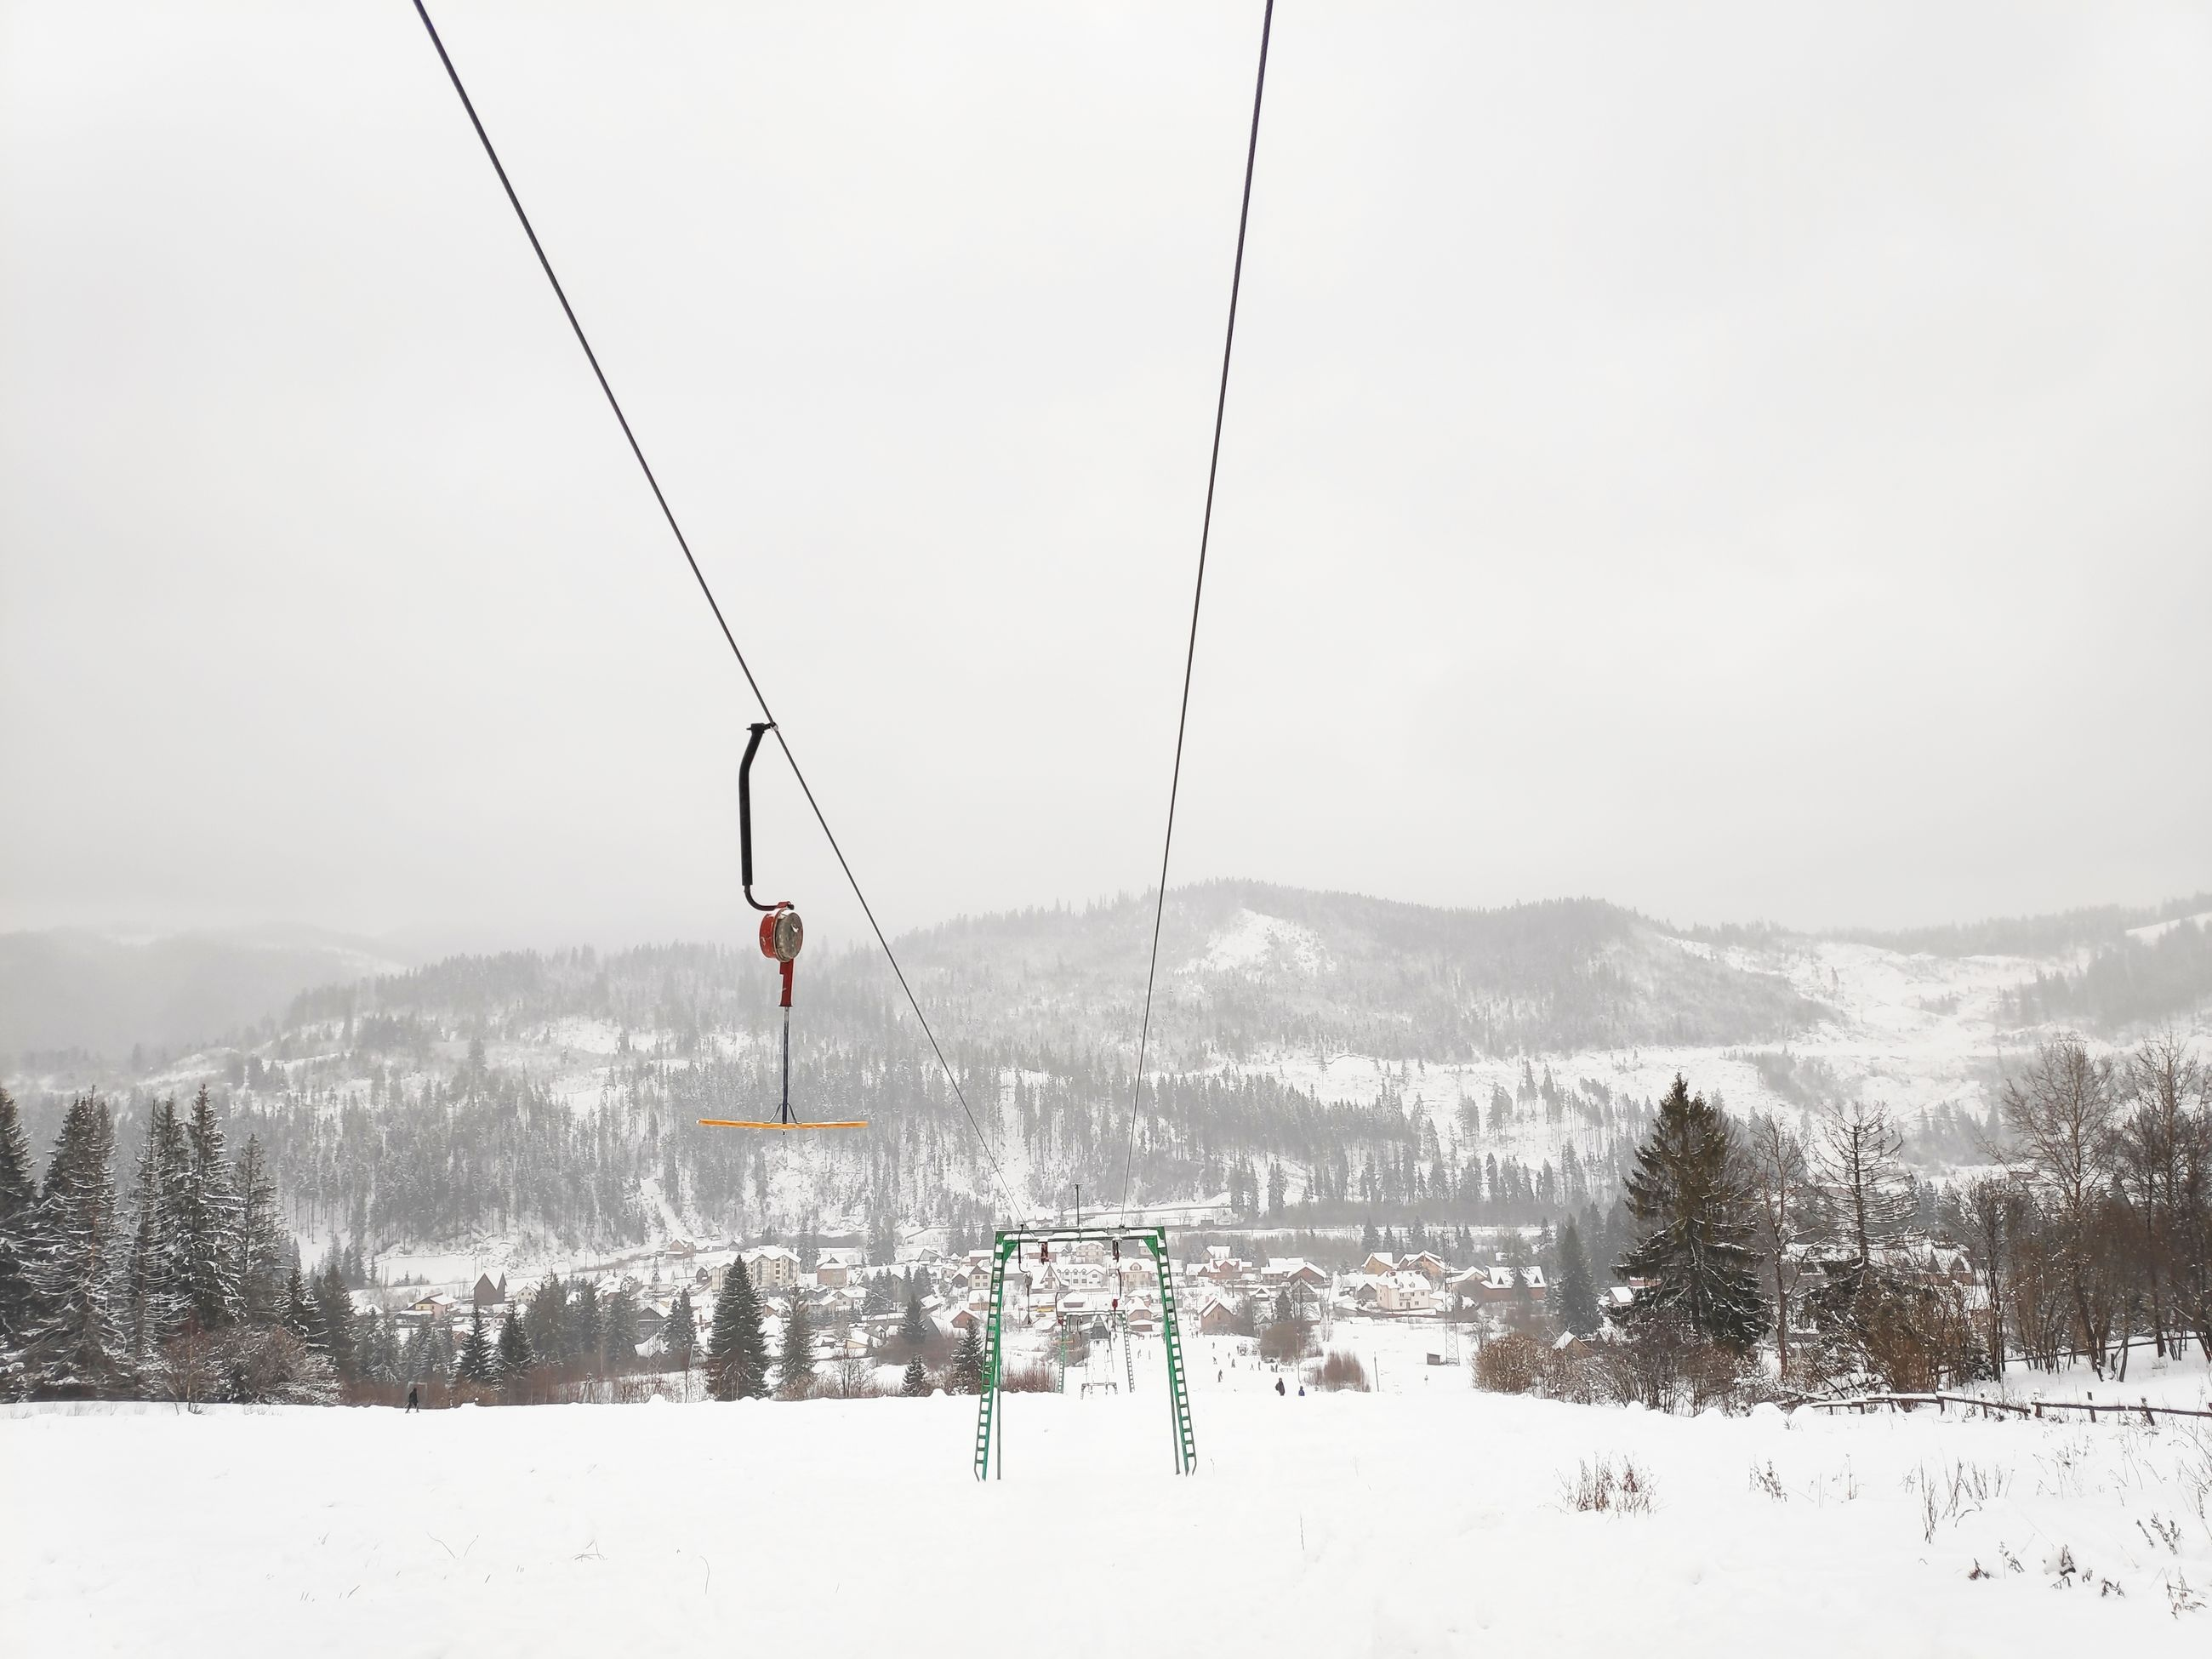 snow, winter, cold temperature, mountain, scenics - nature, beauty in nature, cable car, tree, sky, ski lift, nature, landscape, day, environment, tranquil scene, covering, overhead cable car, cable, white color, mountain range, no people, outdoors, snowcapped mountain